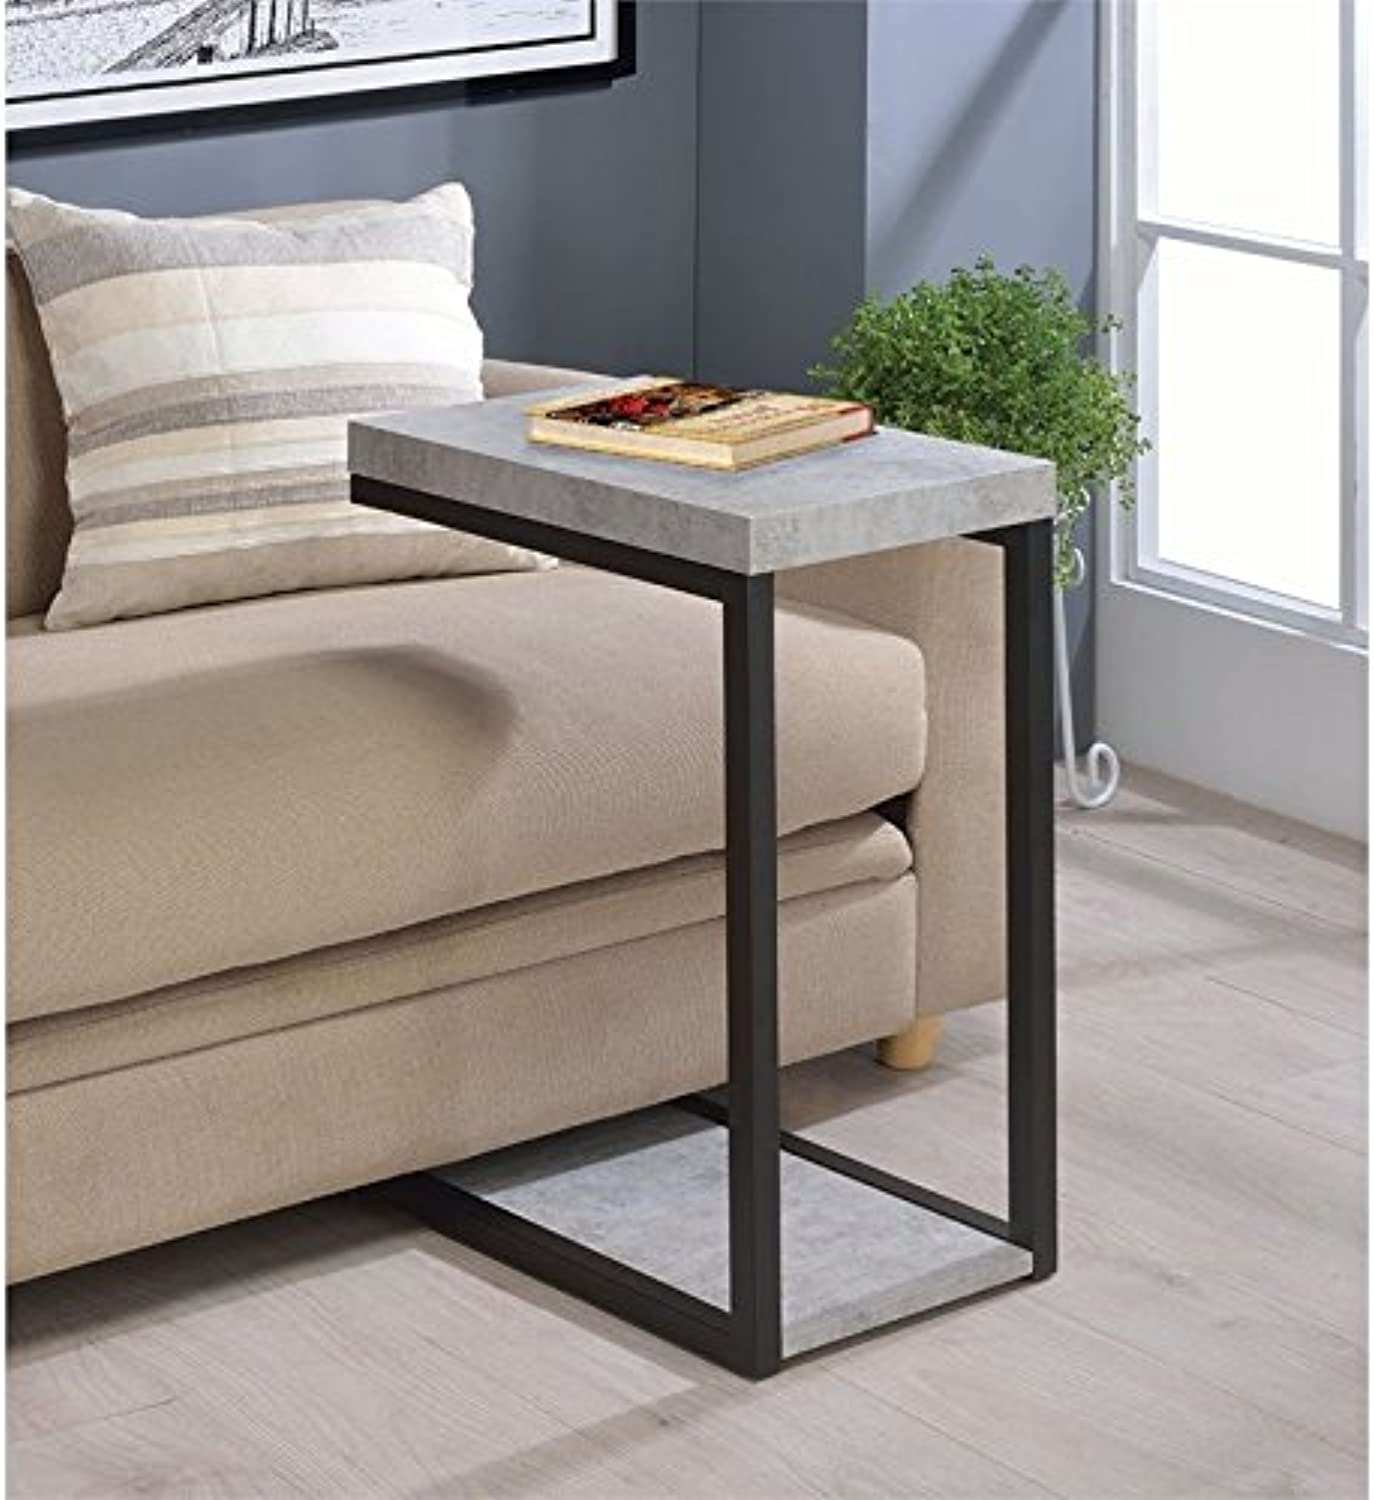 Bowery Hill End Table in Cement and Black